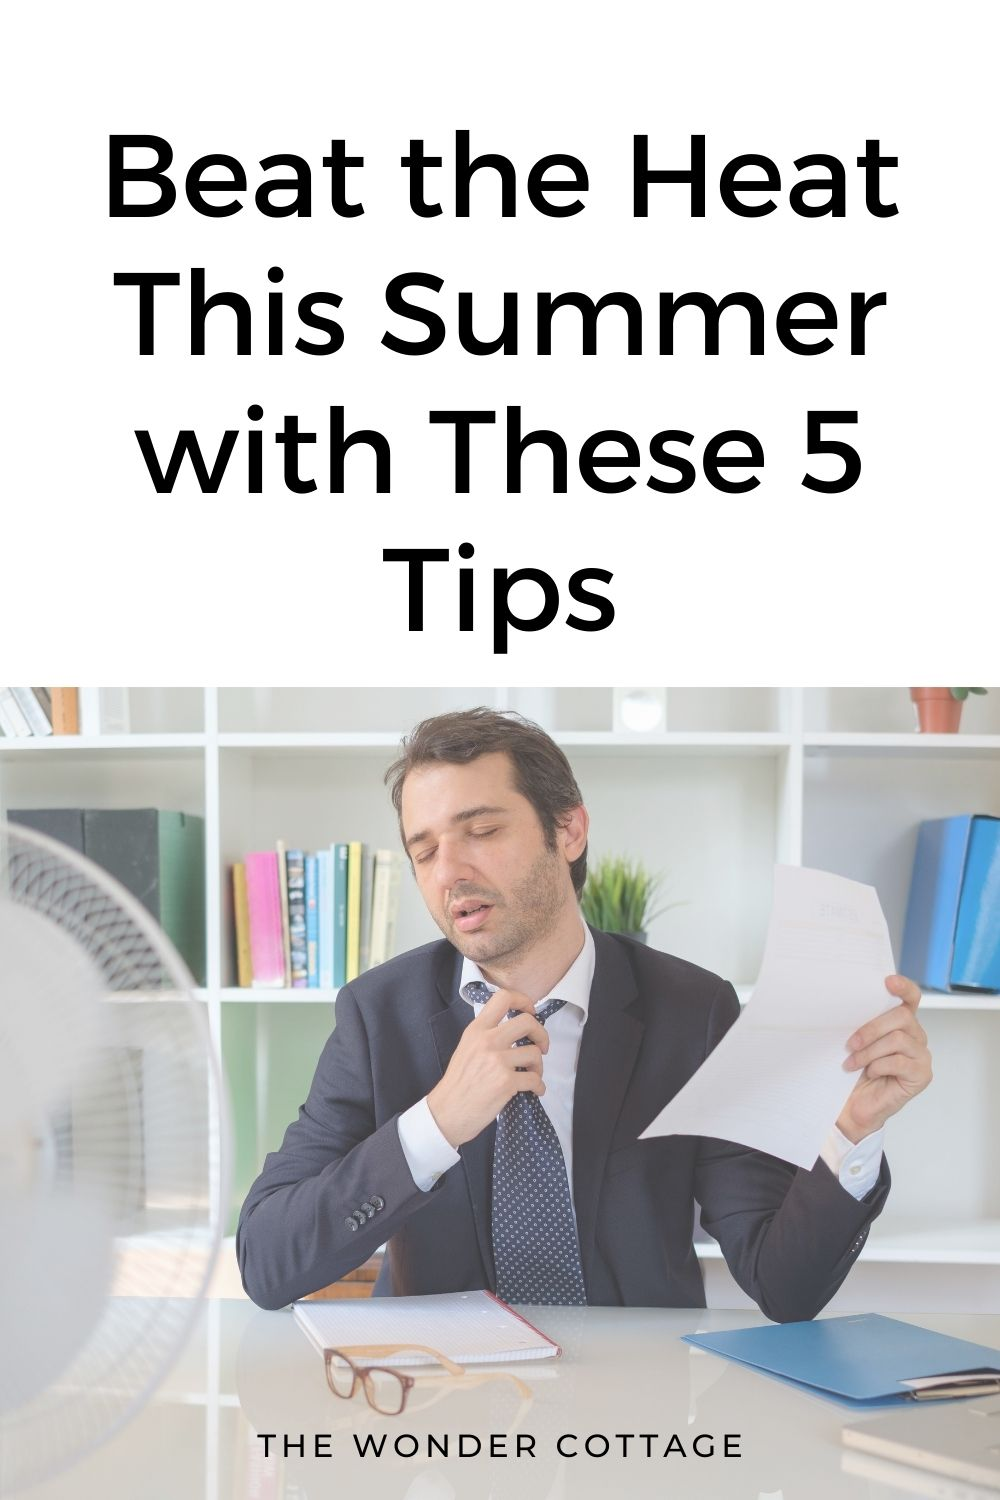 Beat the heat this summer with these 5 tips